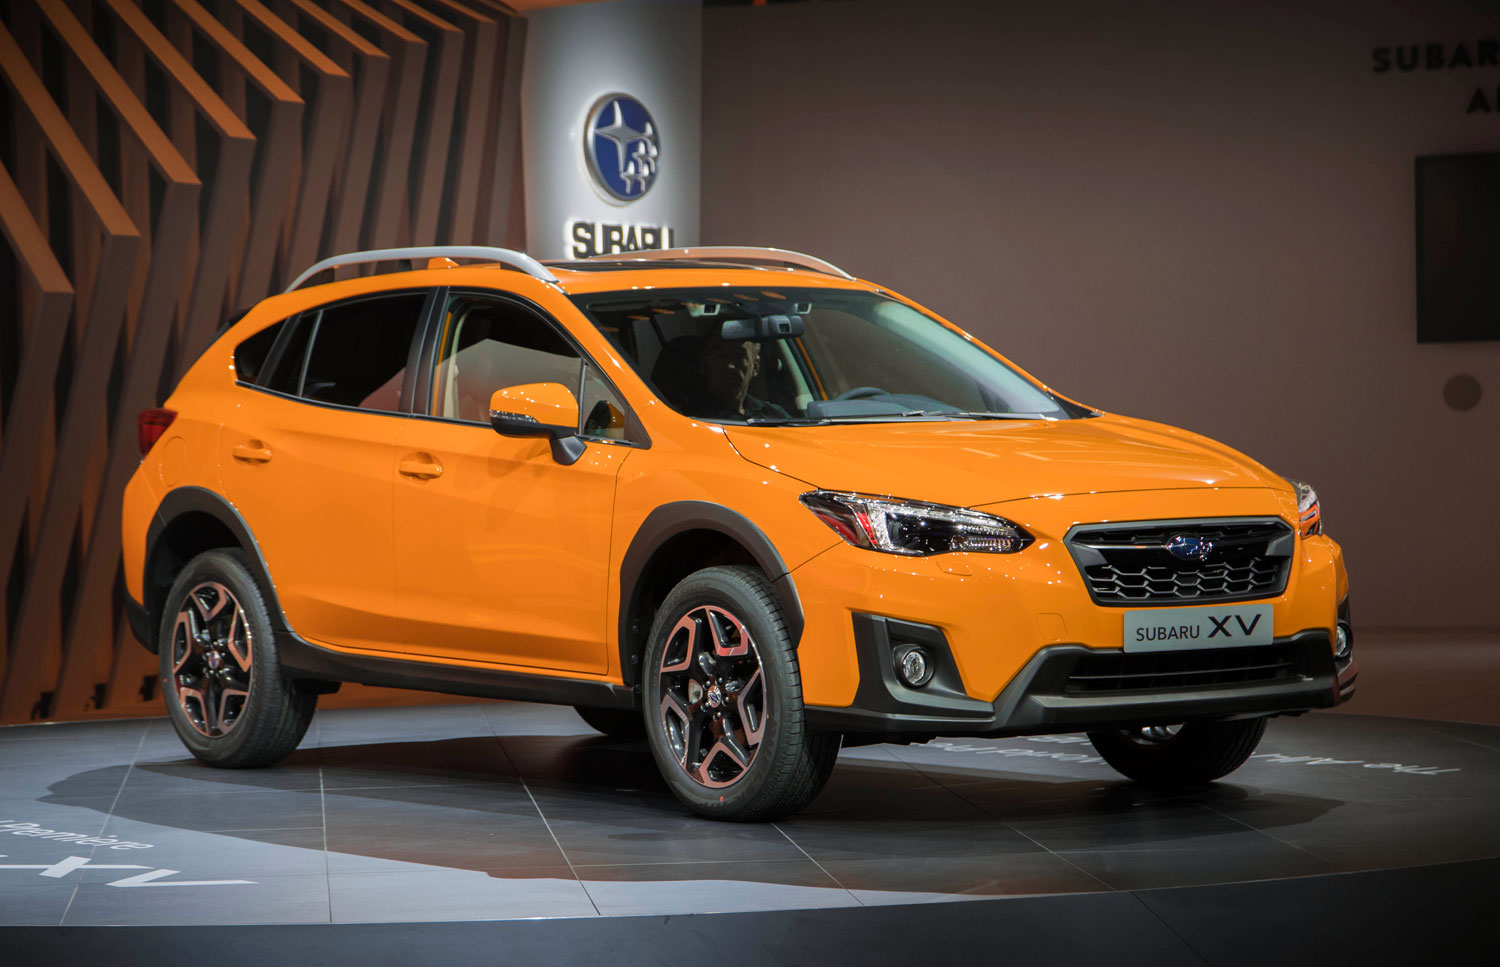 2018 subaru crosstrek details crankshaft culture. Black Bedroom Furniture Sets. Home Design Ideas